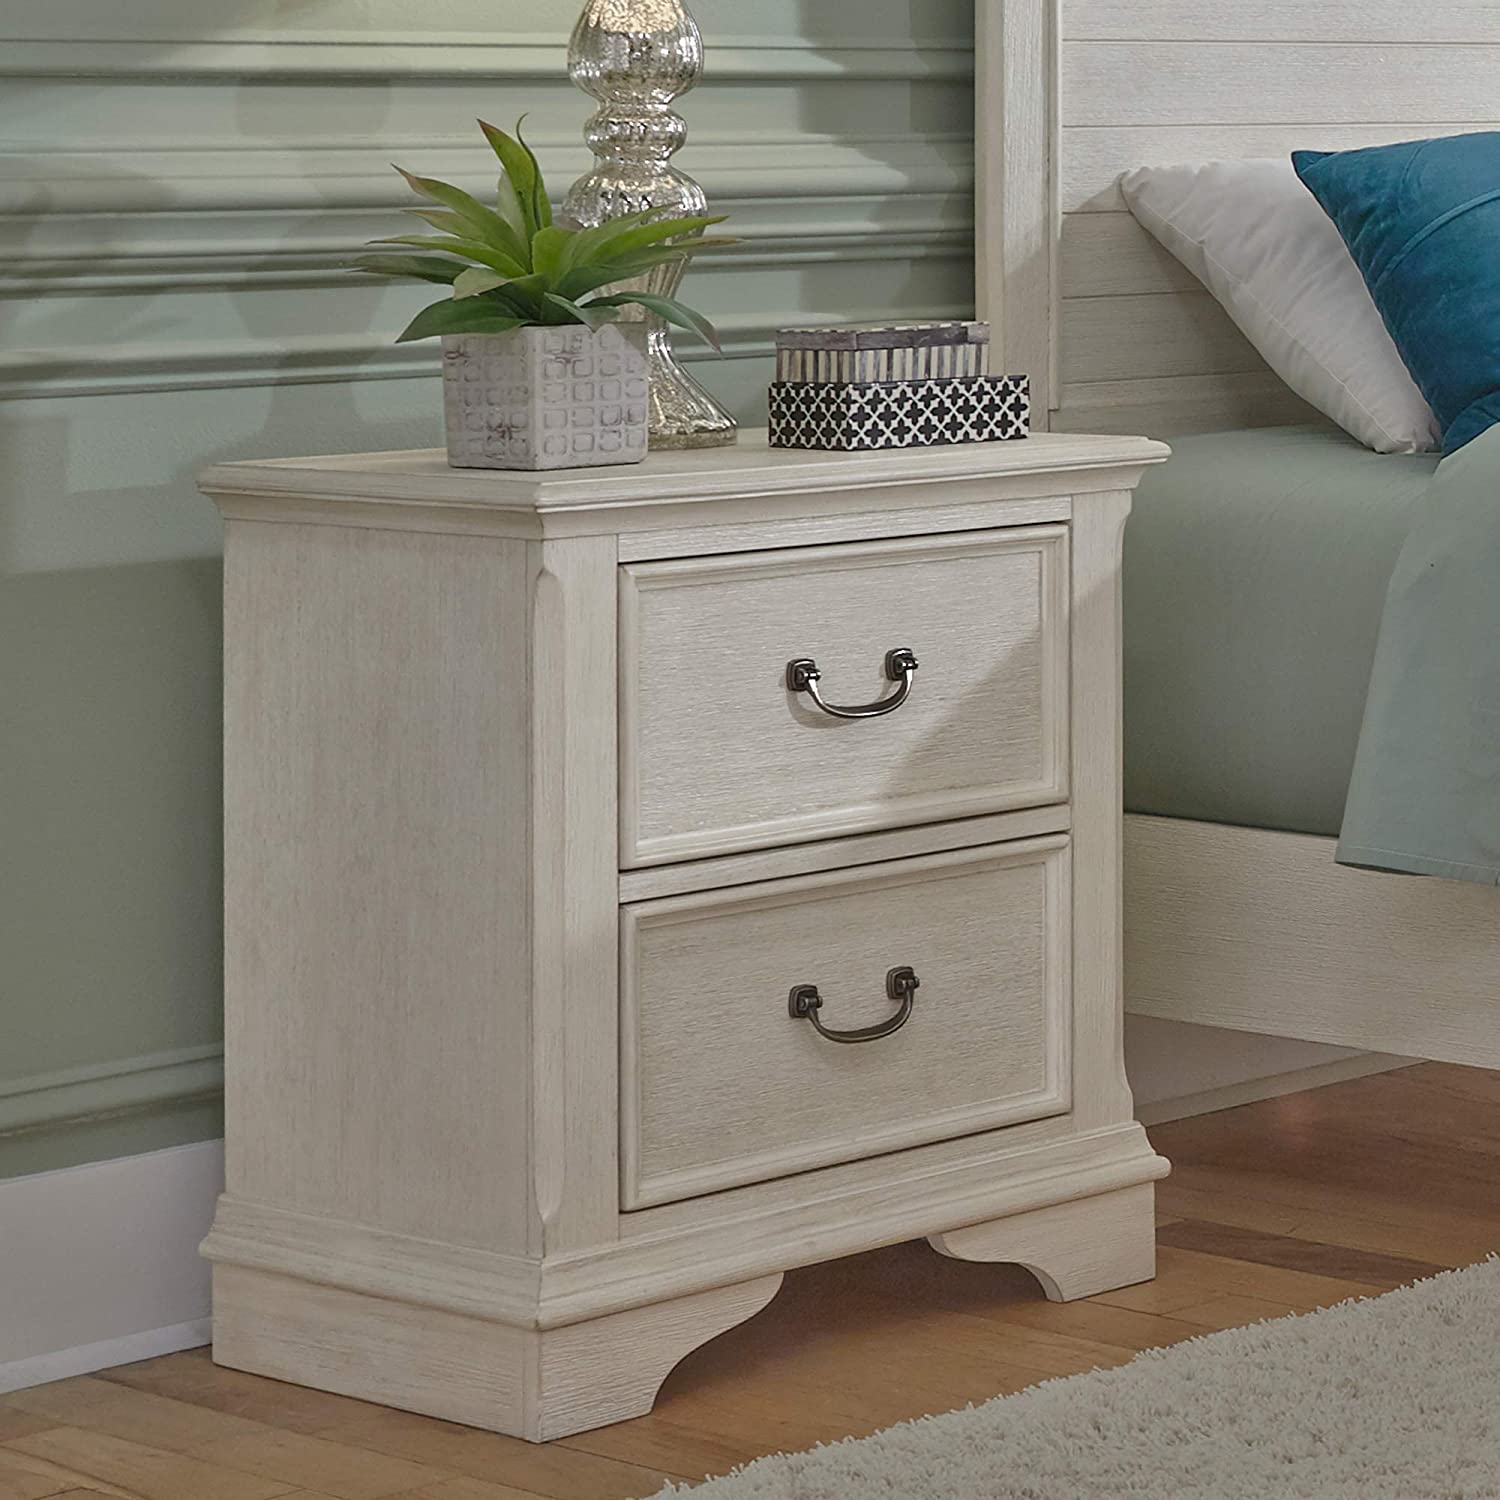 Liberty Furniture Industries Bayside 2 Drawer Night Stand, W24 x D17 x H28, White